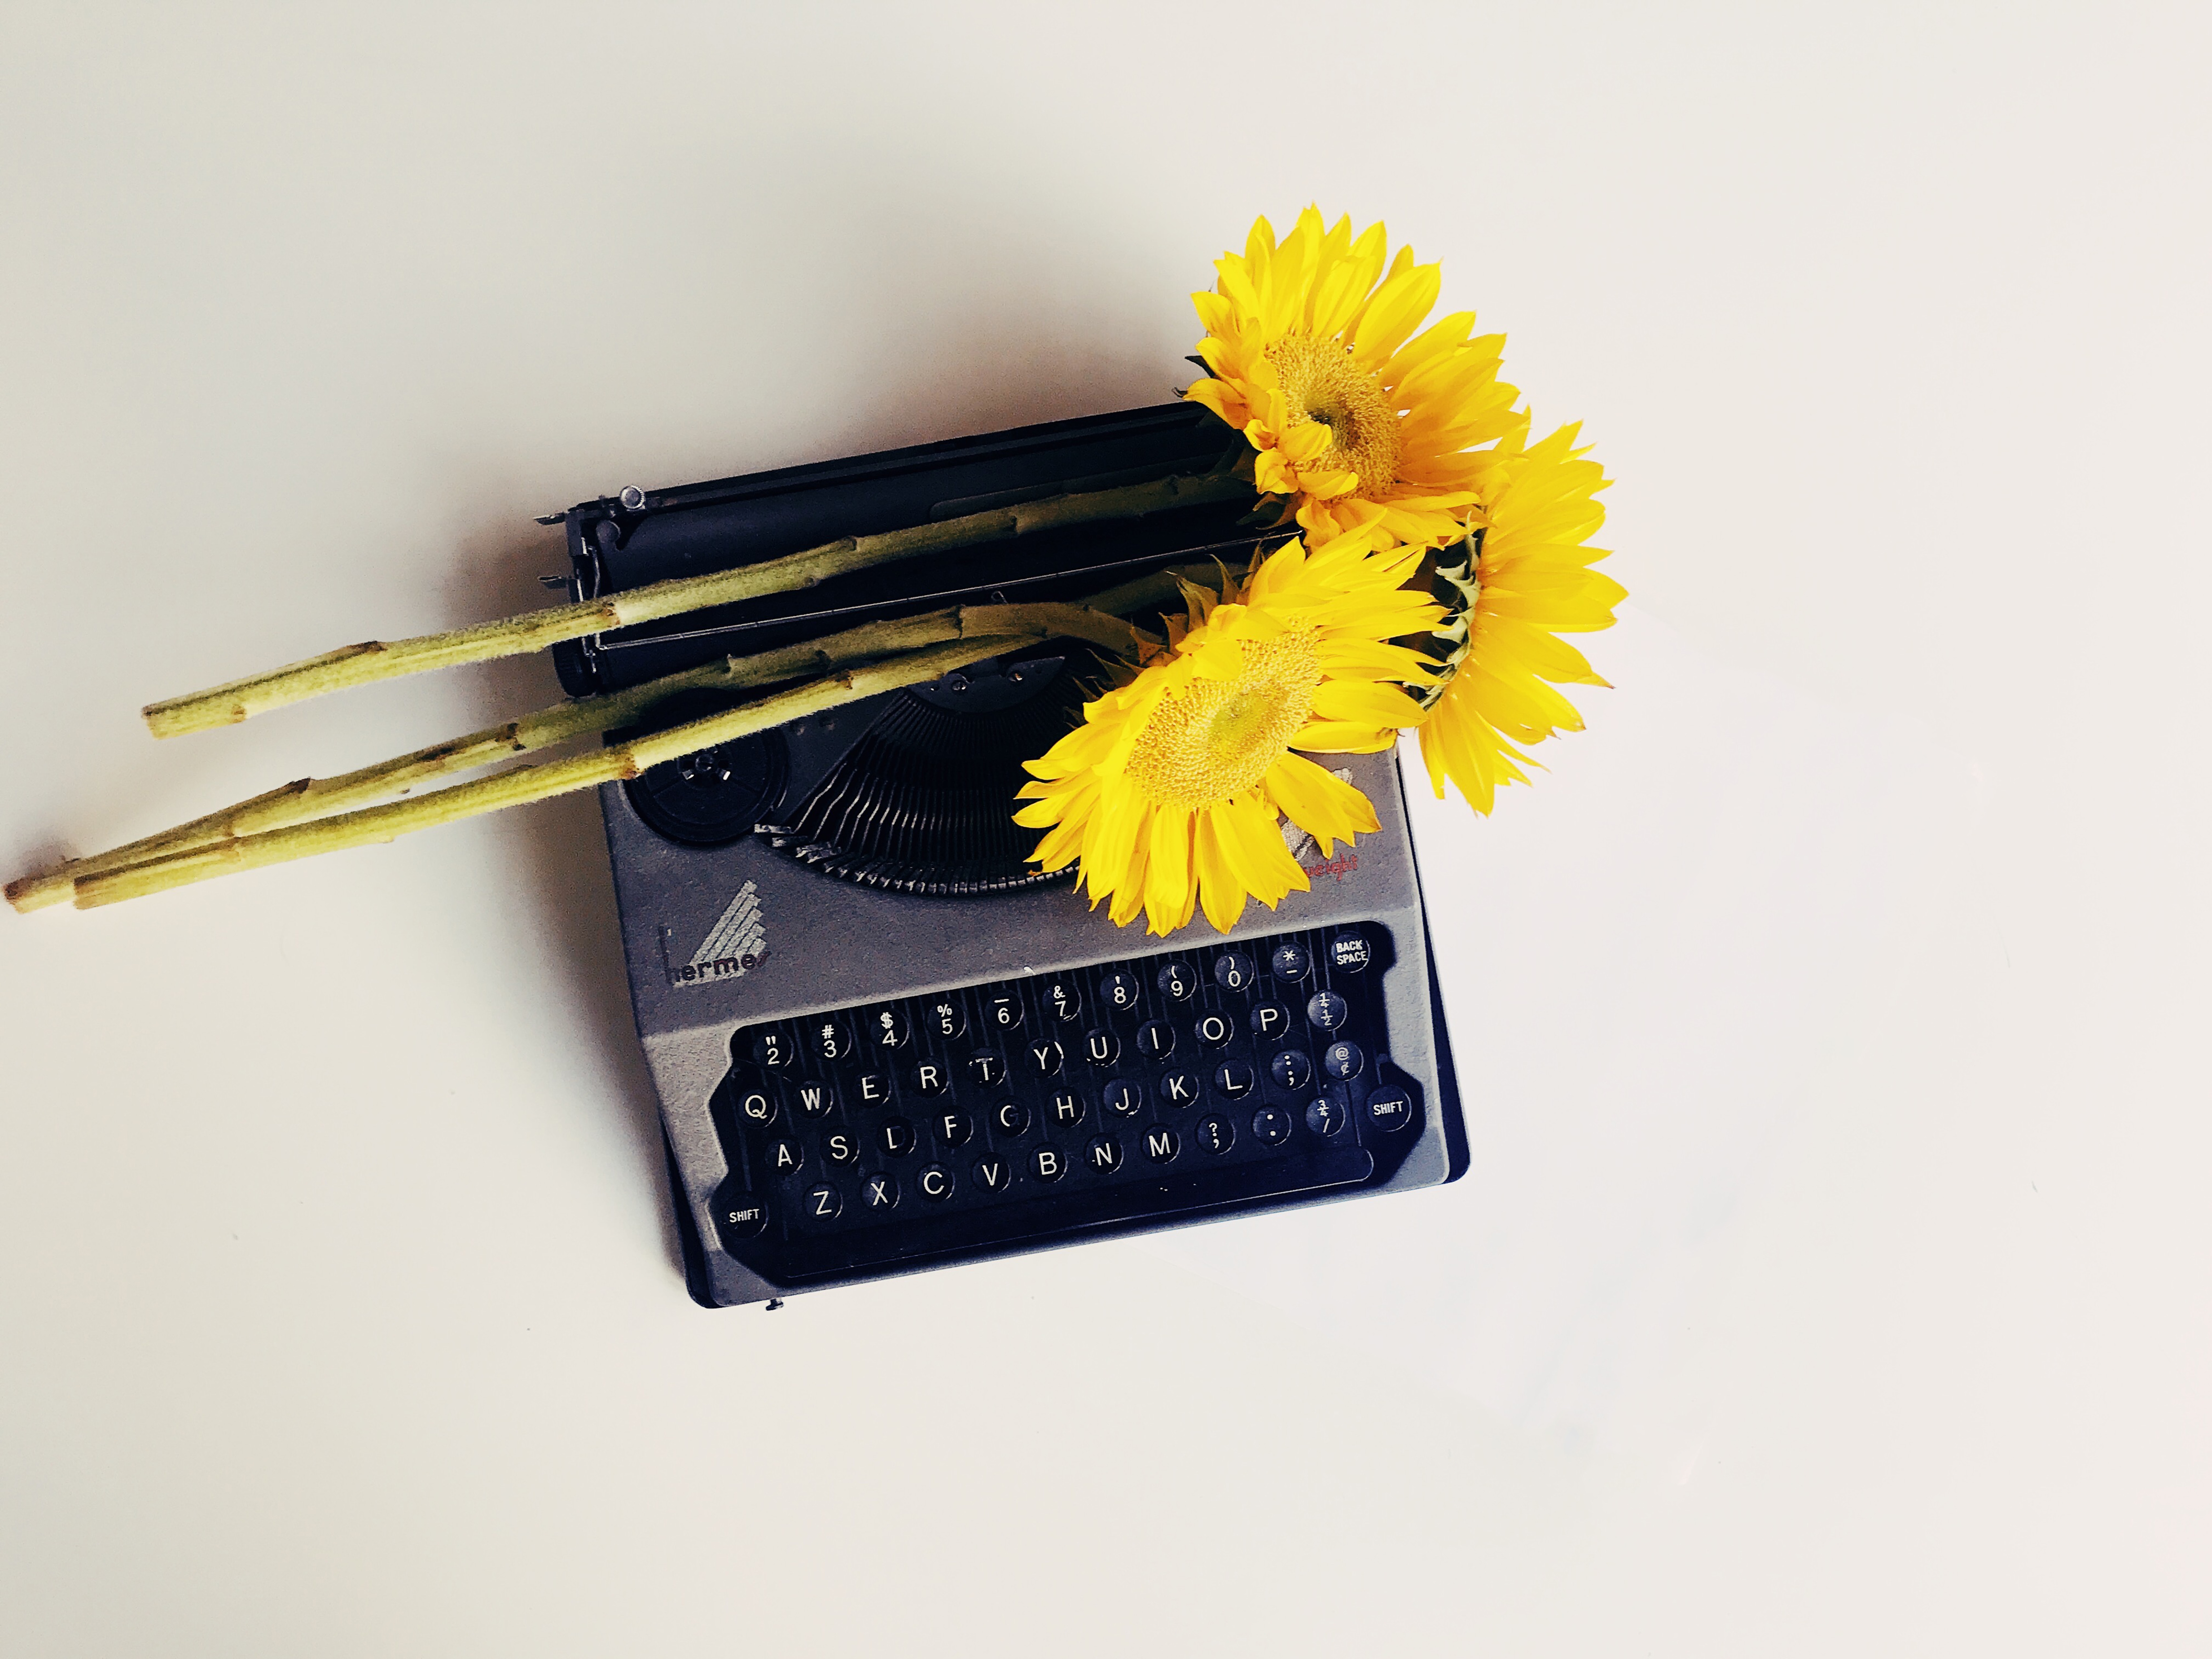 A charcoal grey Hermes typewriter with 3 sunflowers lying on top of it on a light background.